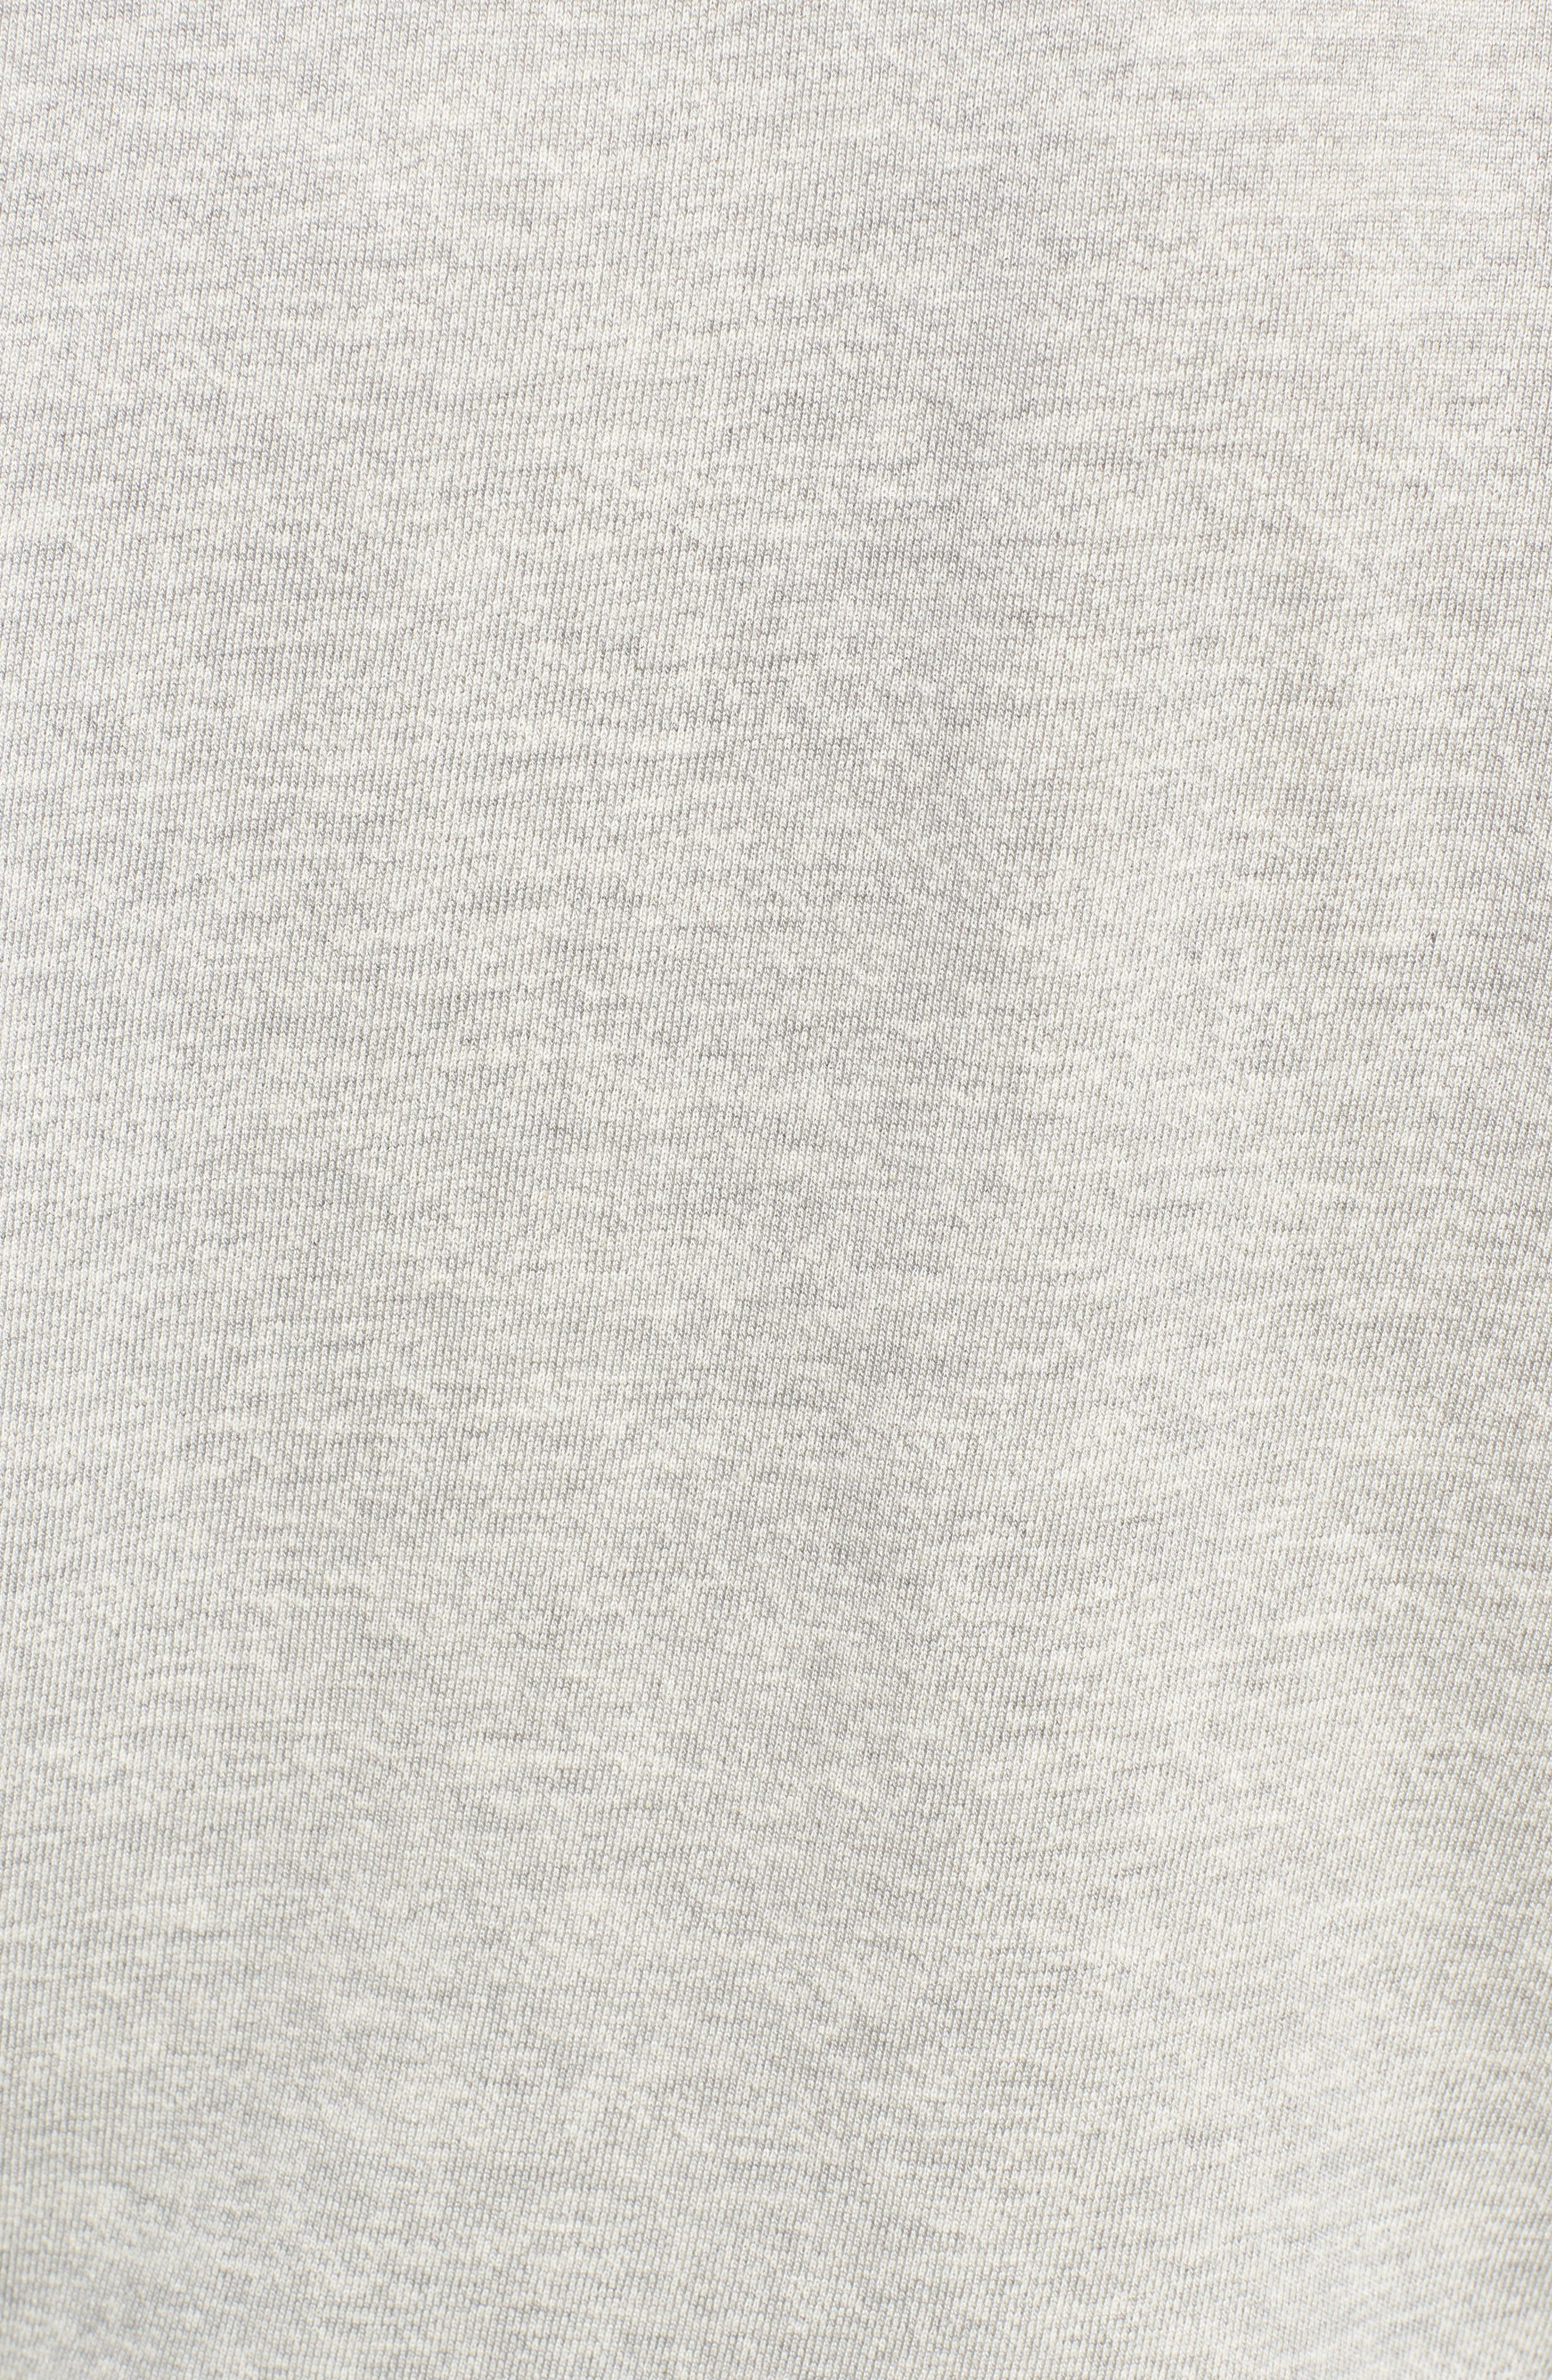 Colorblock Terry Sweatshirt,                             Alternate thumbnail 6, color,                             Heather Grey